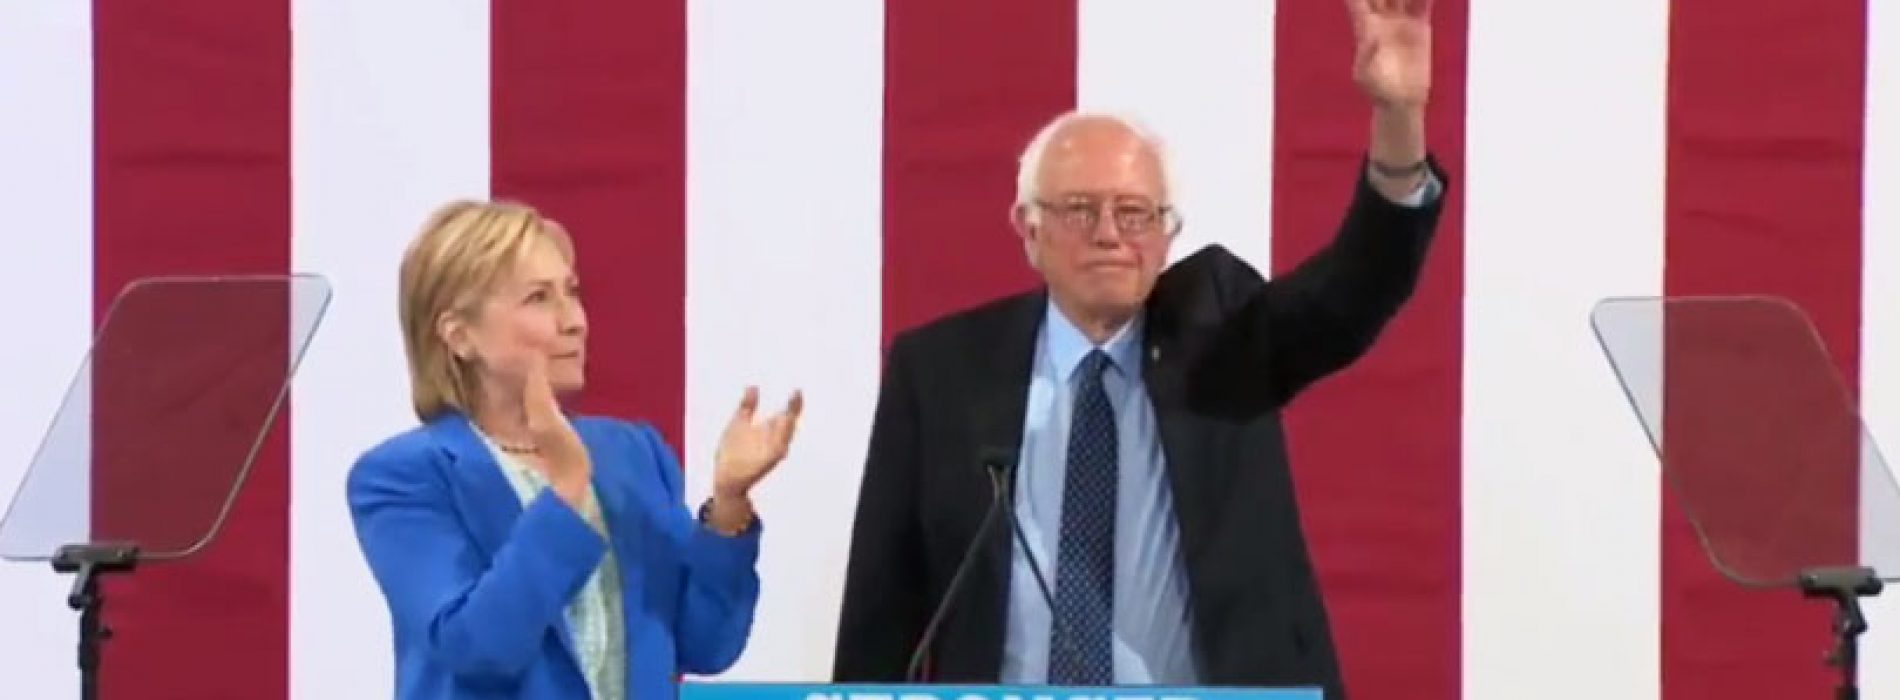 Bernie Sanders endorses Hillary Clinton in Portsmouth, blasts Trump on minimum wage